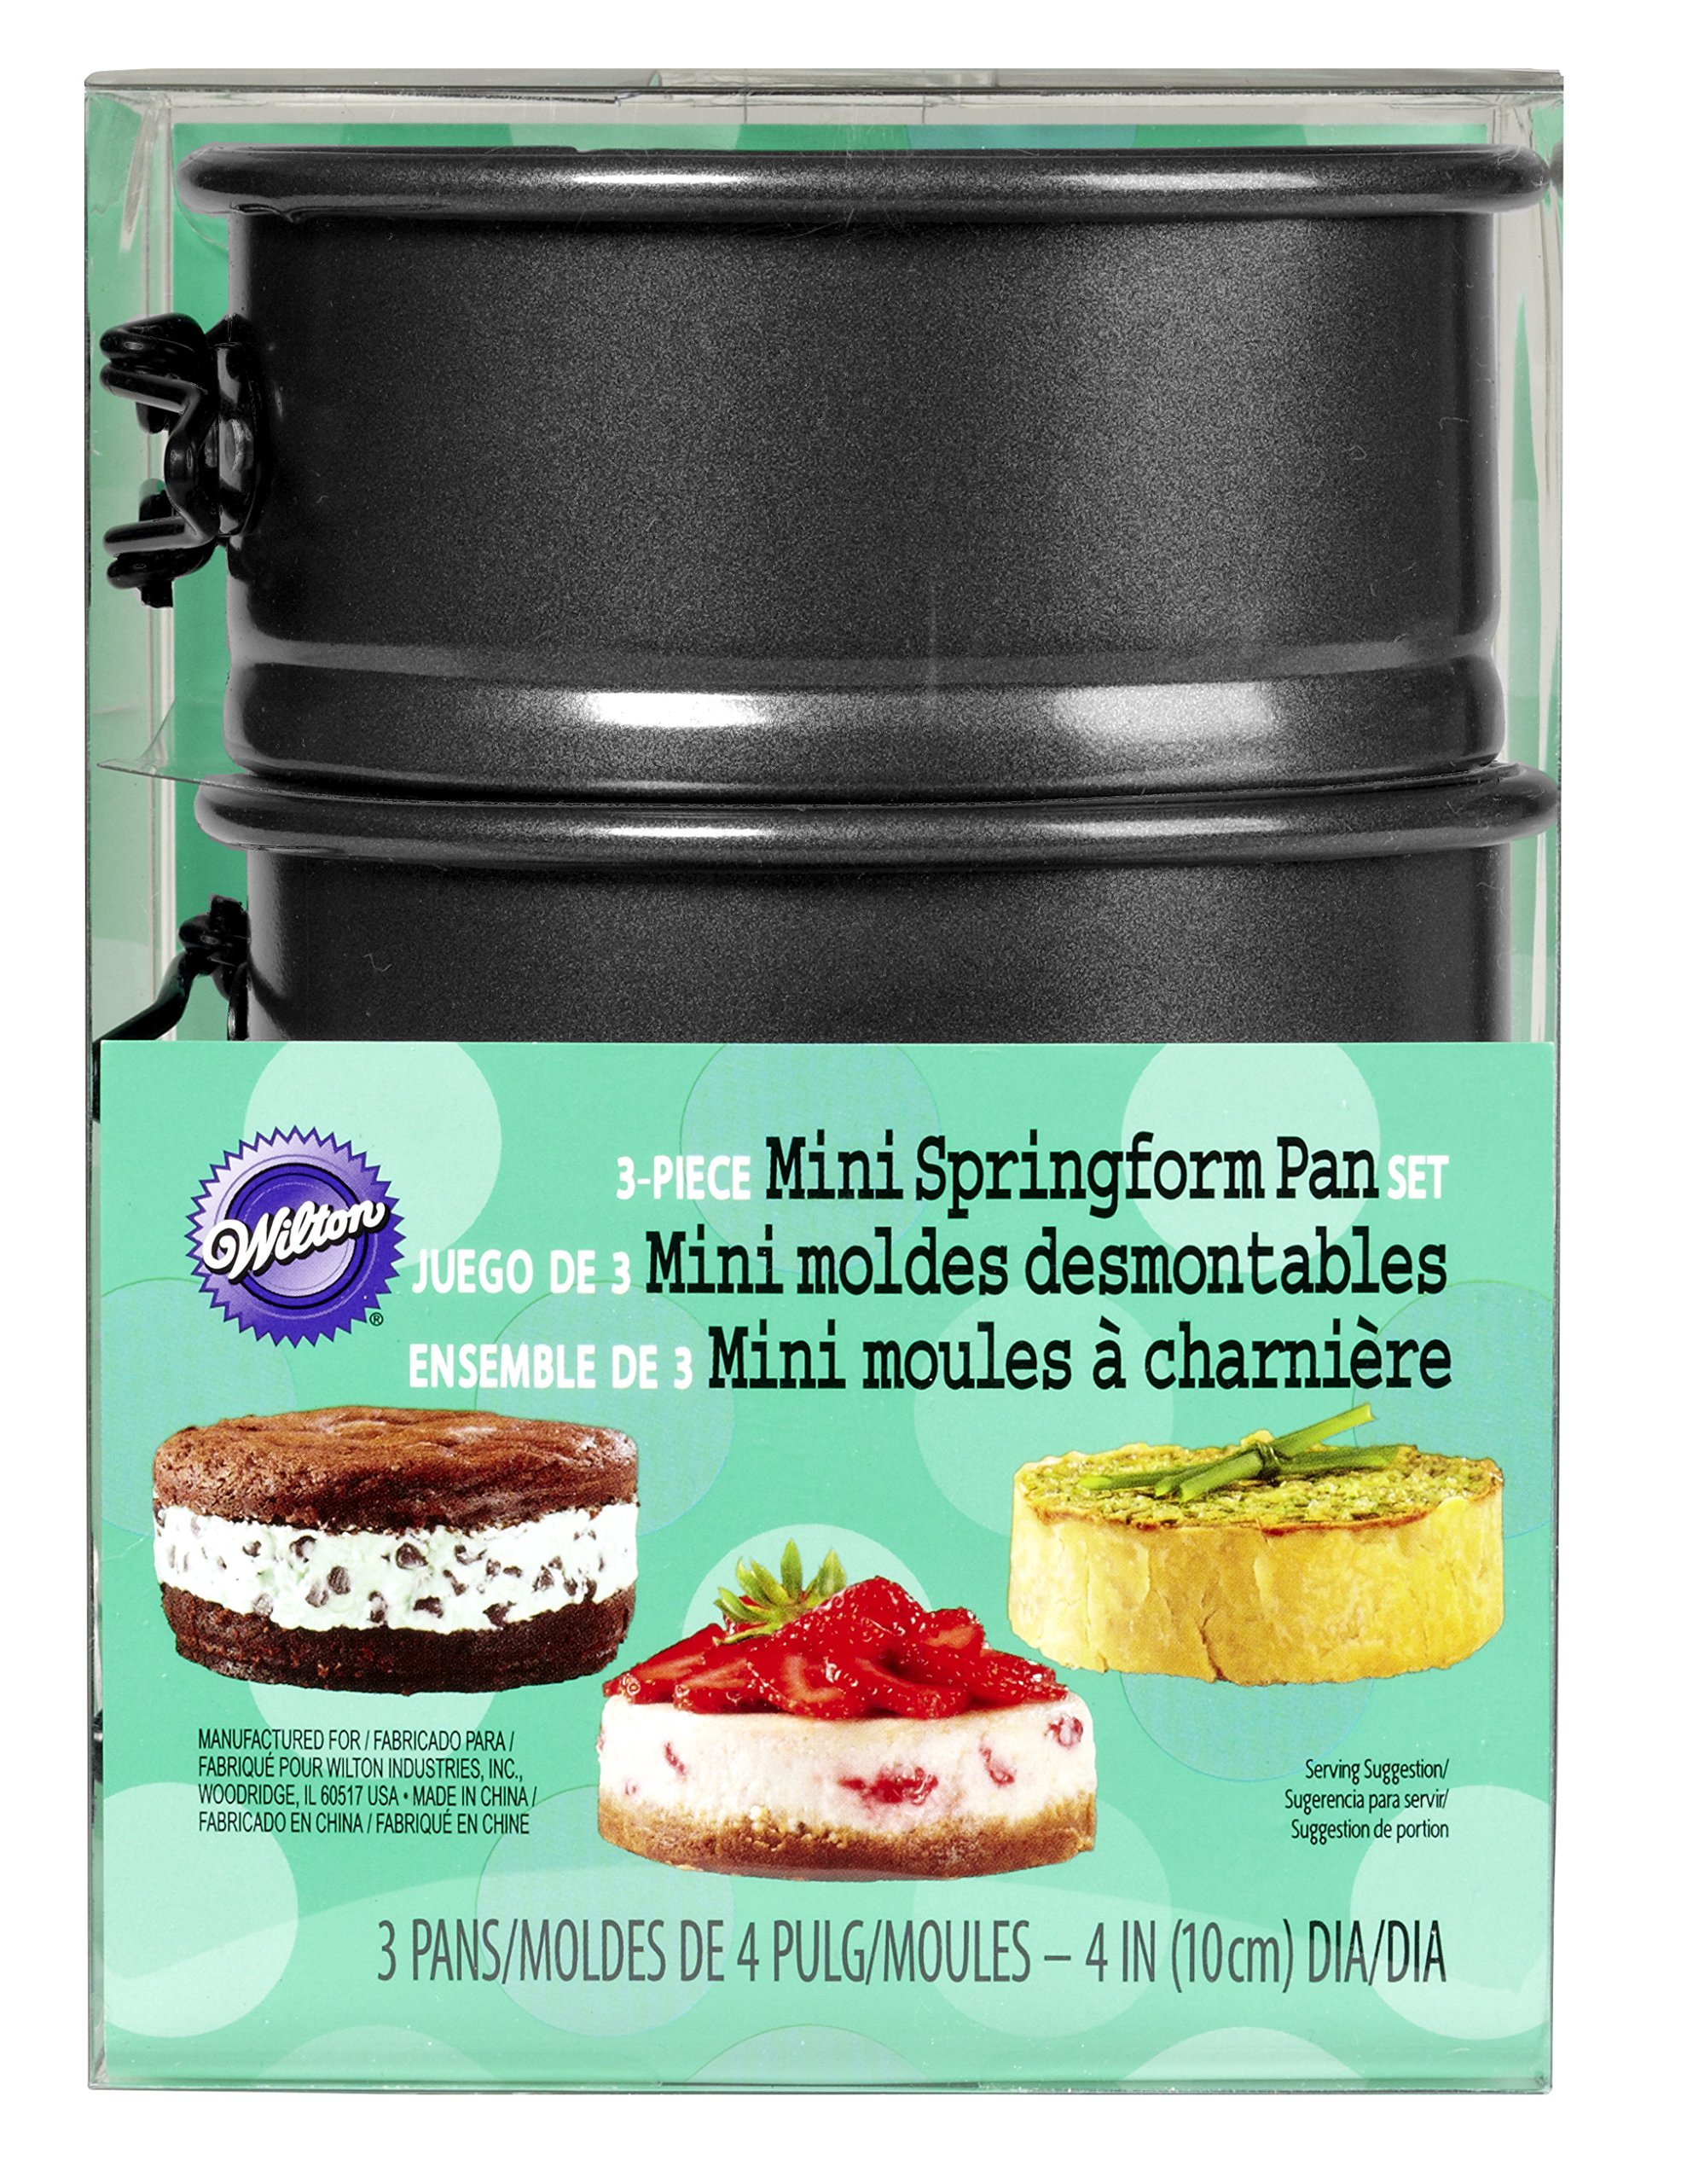 Wilton 4-Inch Mini Springform Pans Set, 3-Piece for Mini Cheesecakes, Pizzas and Quiches by Wilton (Image #2)